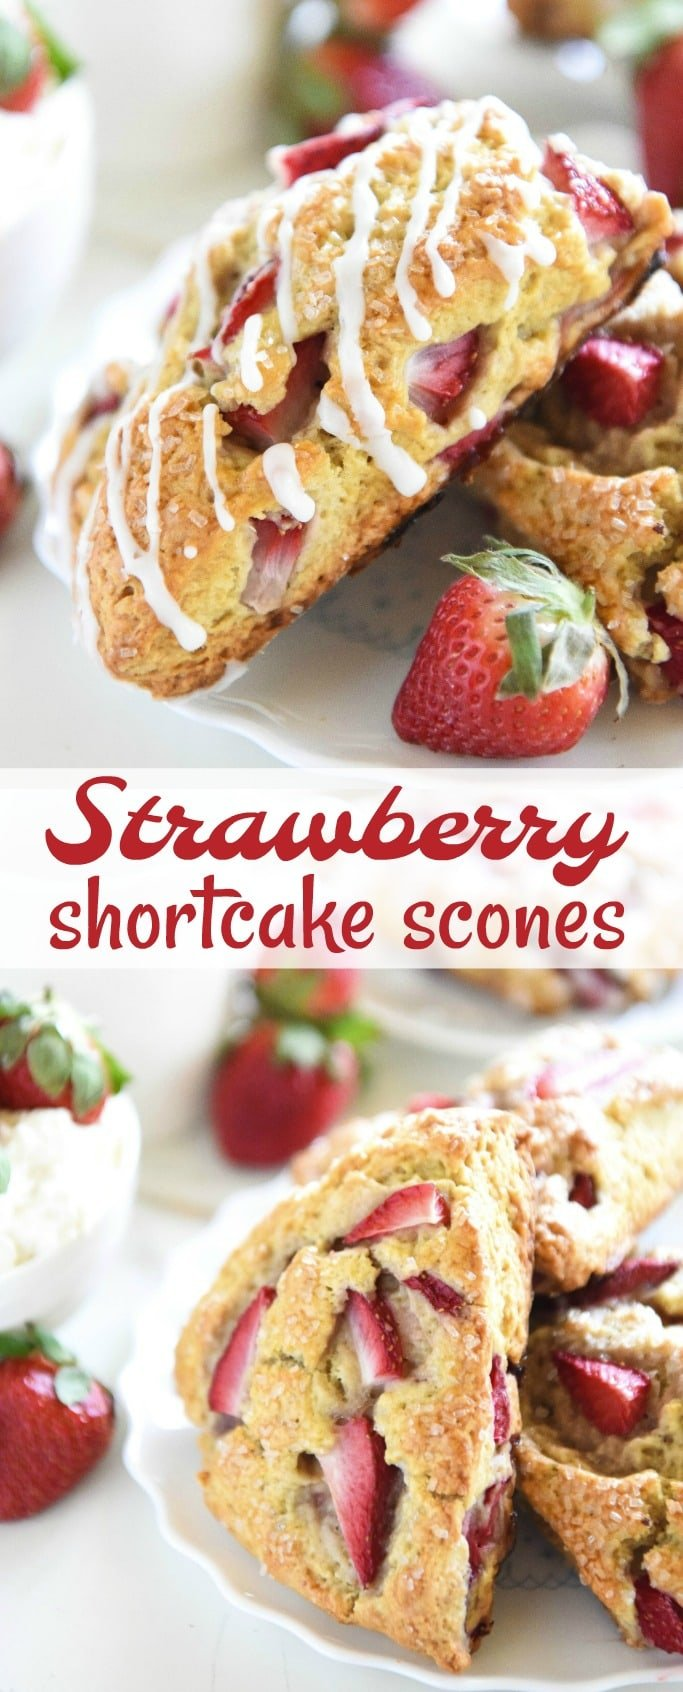 Strawberry Shortcake Scones: tender scones are stuffed with fresh strawberries, topped with vanilla cream icing and are easily made with your food processor!